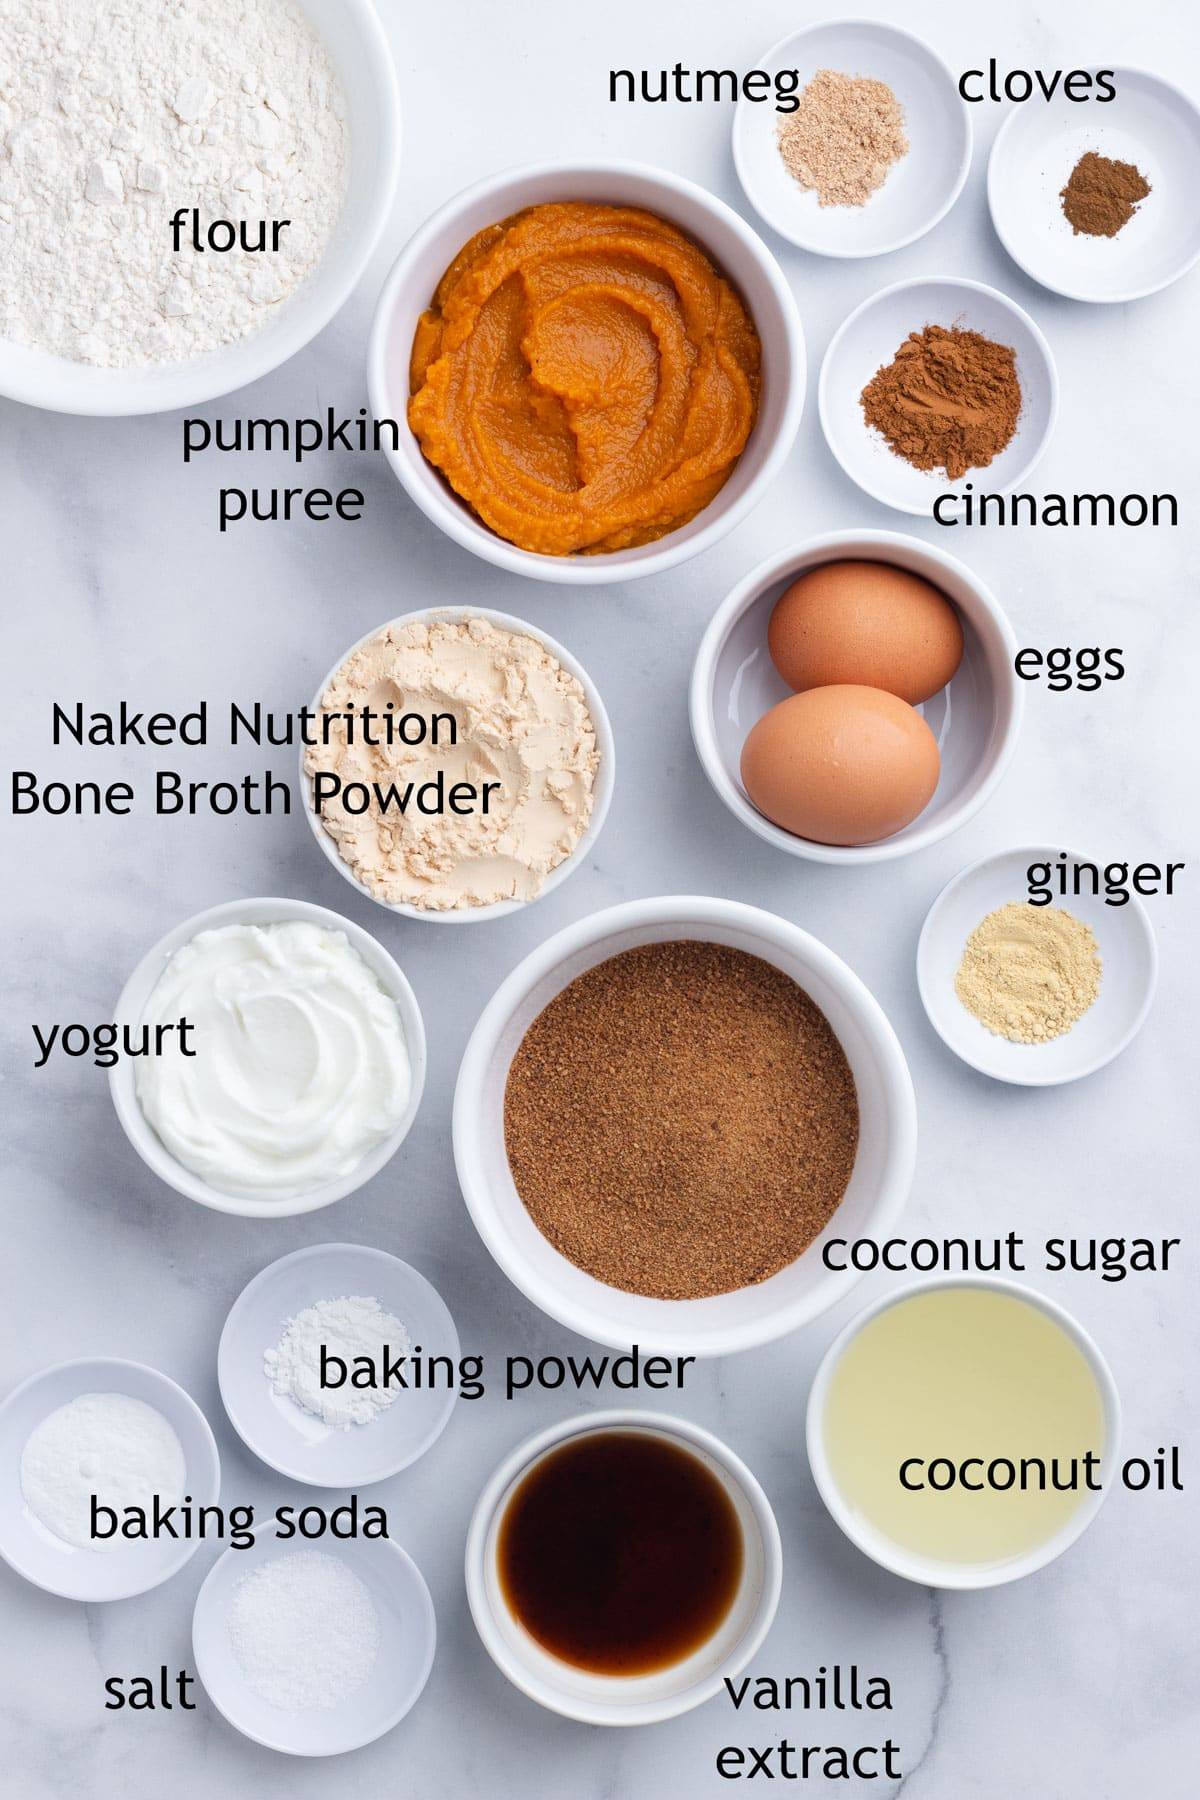 Ingredients for muffins including flour, pumpkin puree, spices, protein powder, eggs, coconut sugar, coconut oil and yogurt.